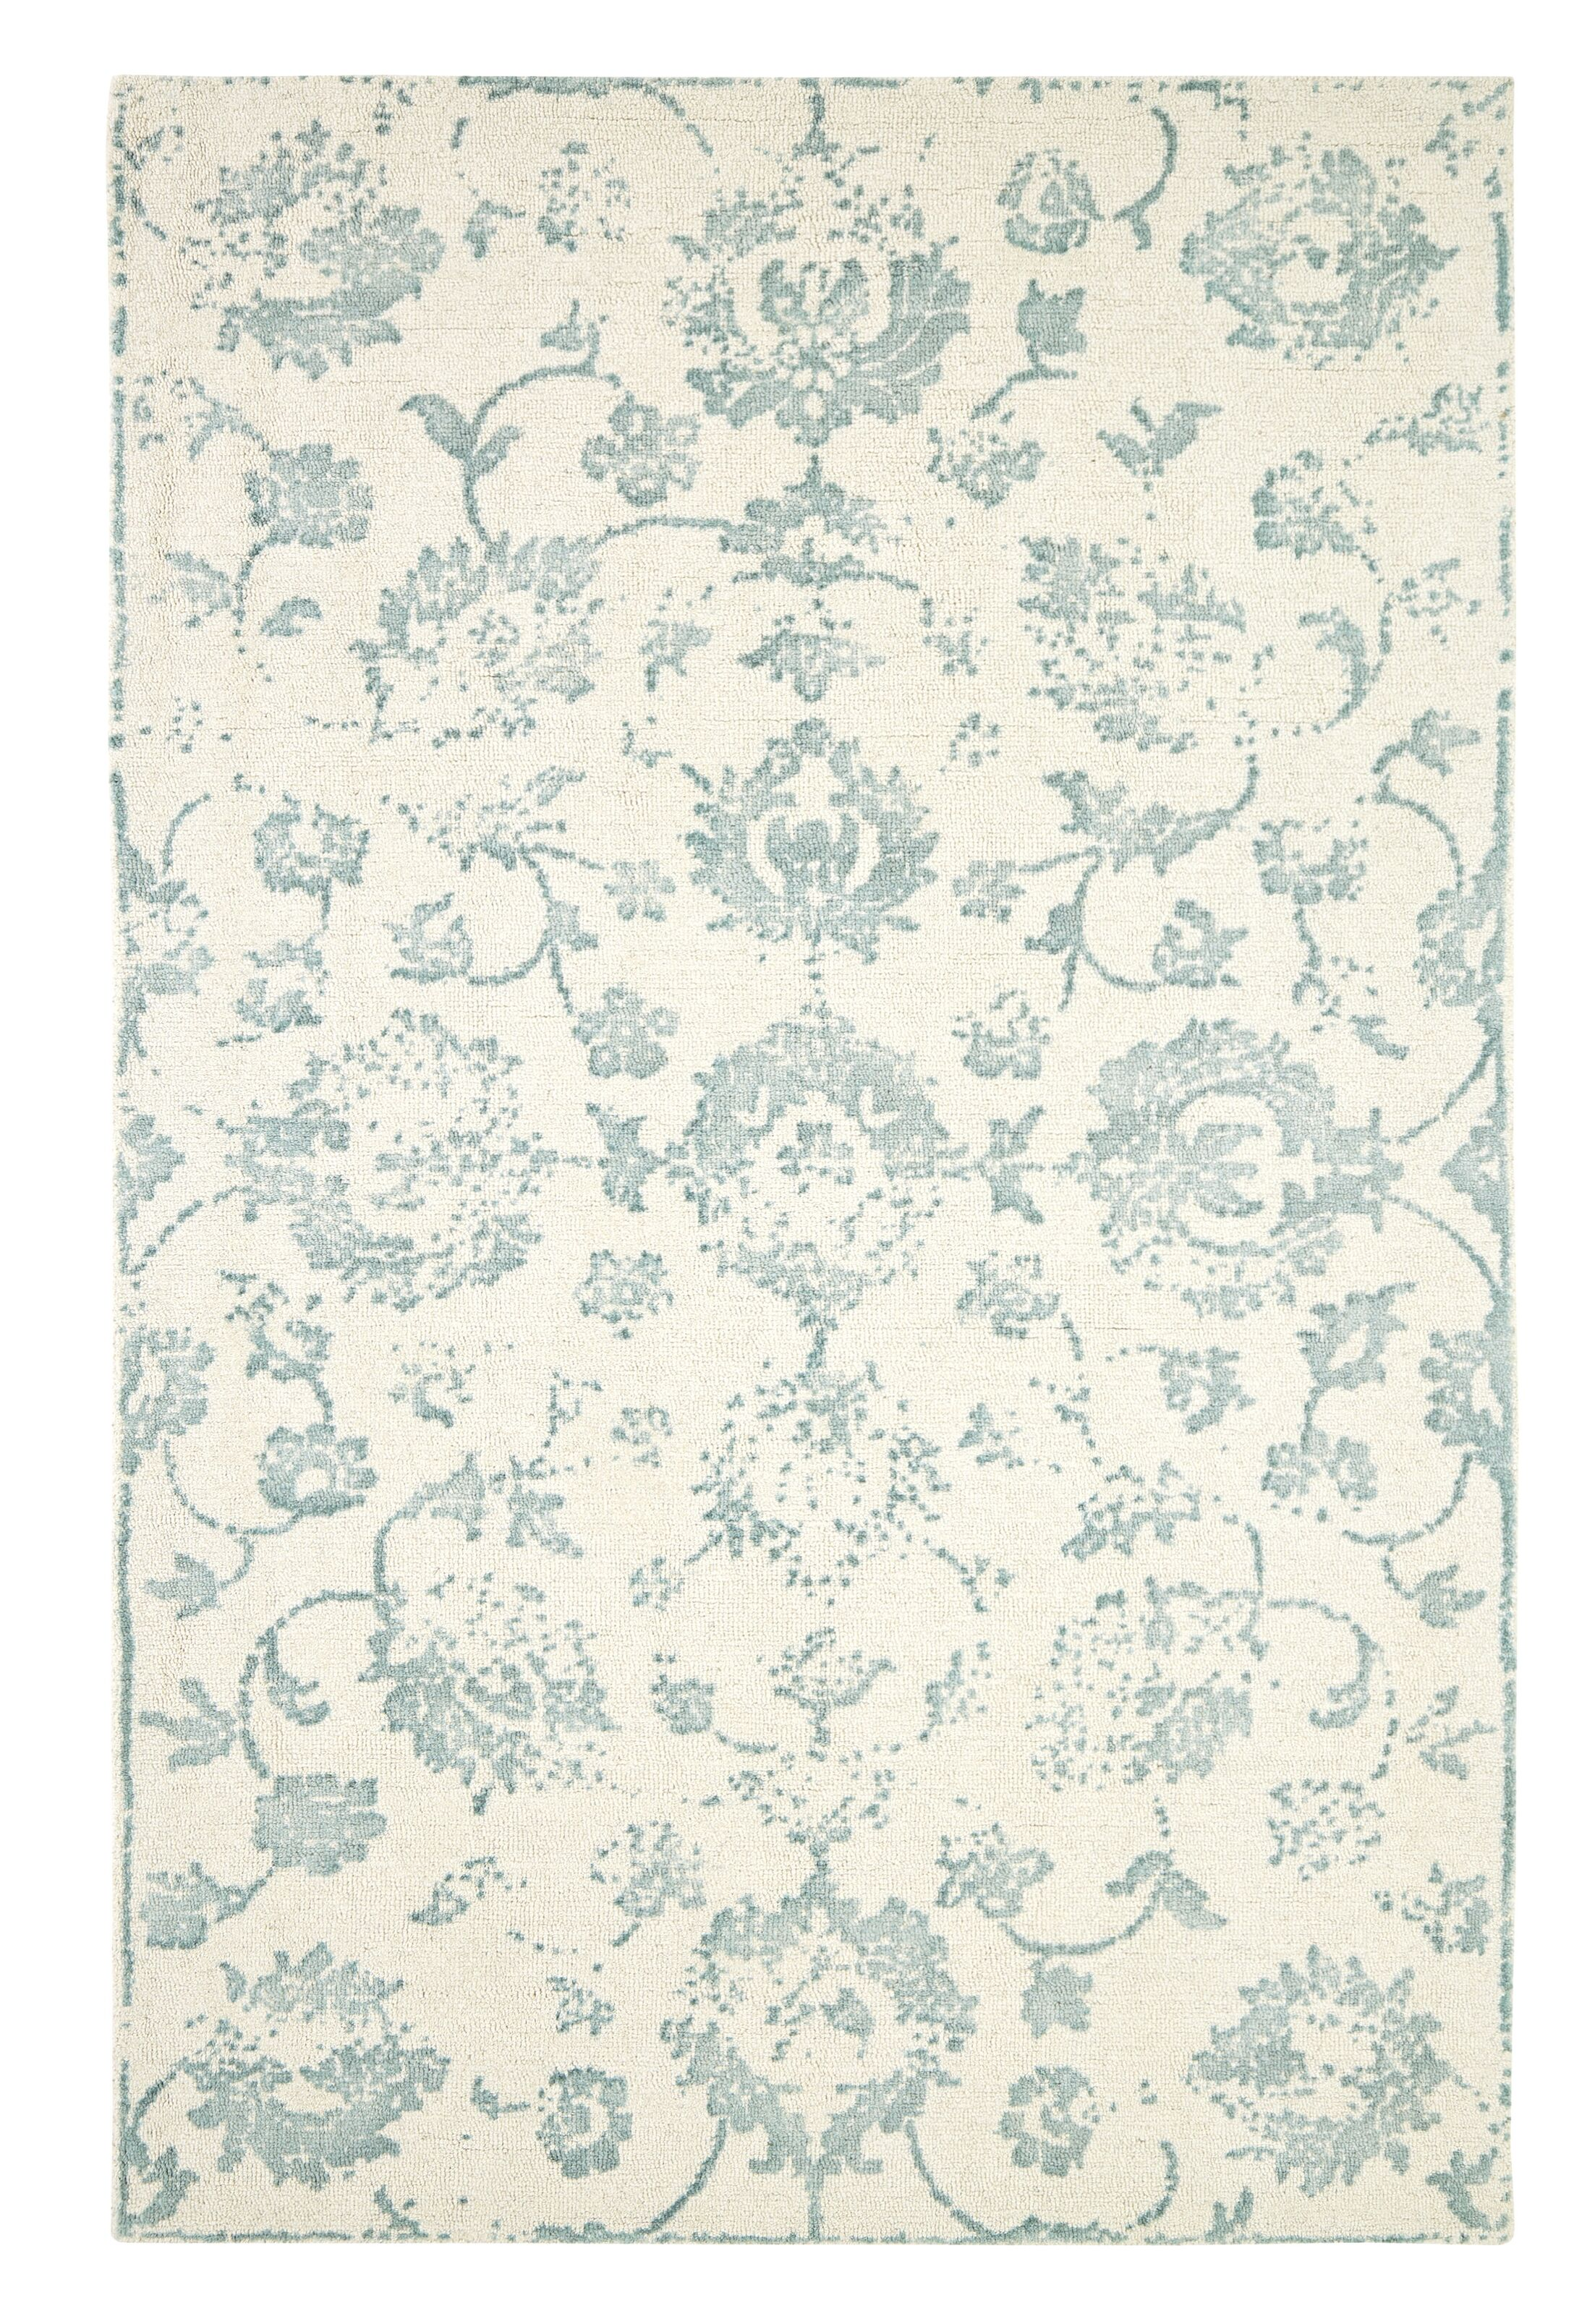 Gerry Hand-Woven Beige/Green Area Rug Rug Size: Rectangle 5' x 8'